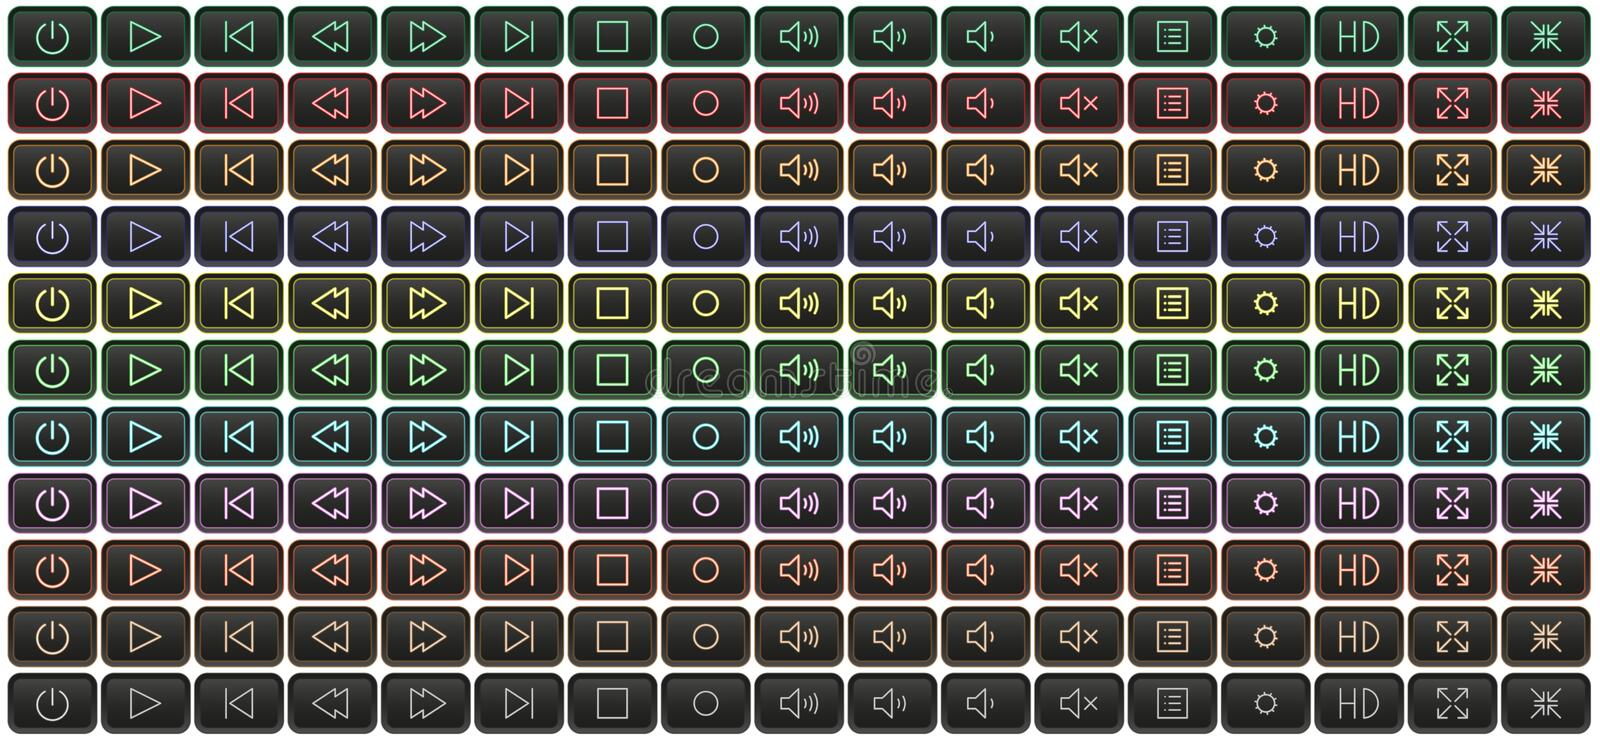 Neon media player buttons multicolored royalty free stock photography